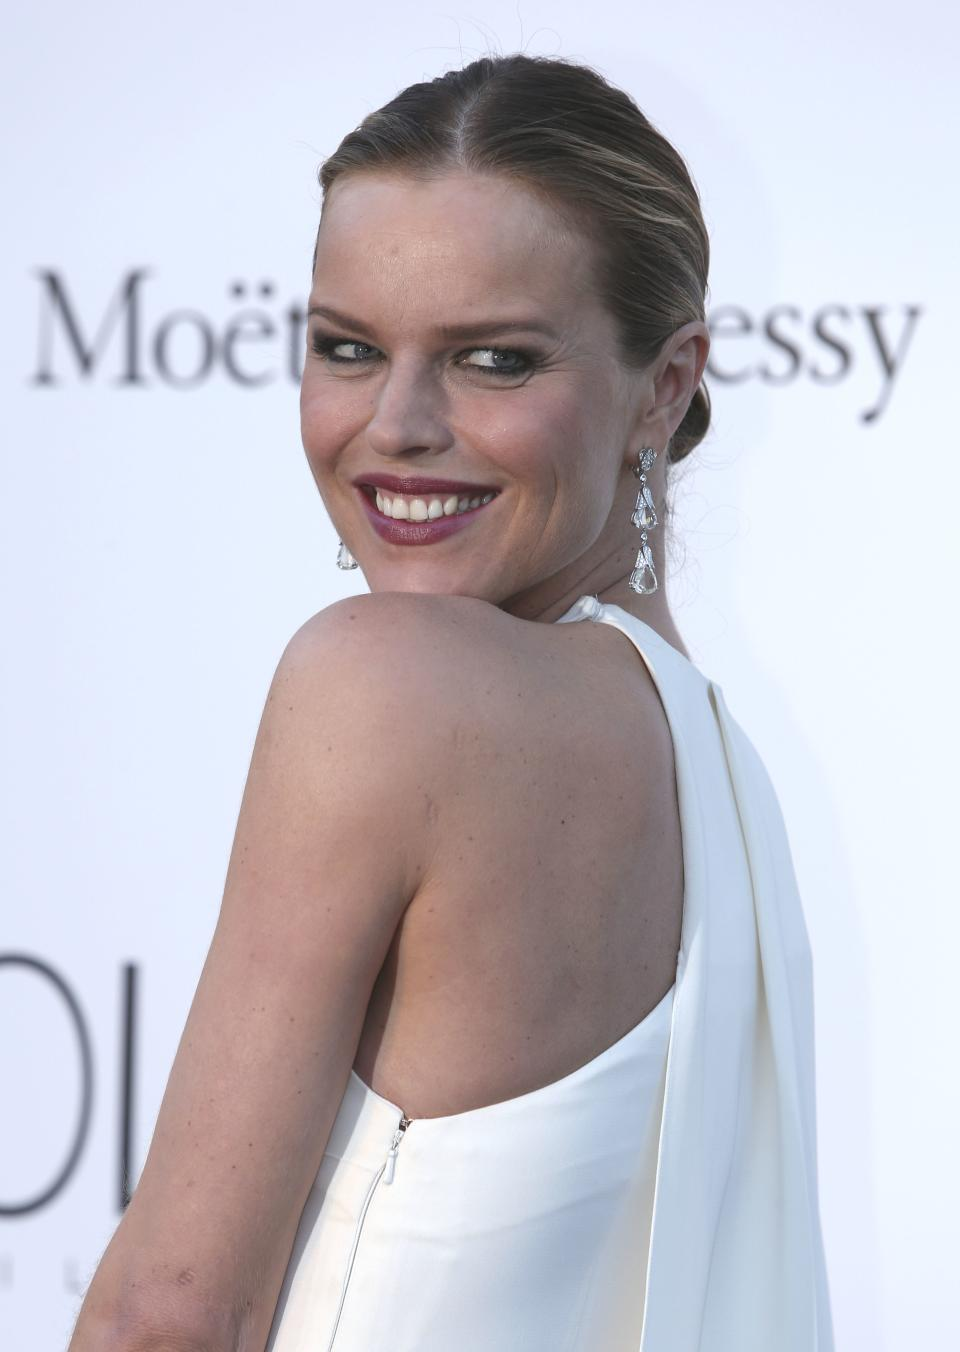 Model Eva Herzigova arrives at amfAR Cinema Against AIDS benefit at the Hotel du Cap-Eden-Roc, during the 66th international film festival, in Cap d'Antibes, southern France, Thursday, May 23, 2013. (Photo by Joel Ryan/Invision/AP)